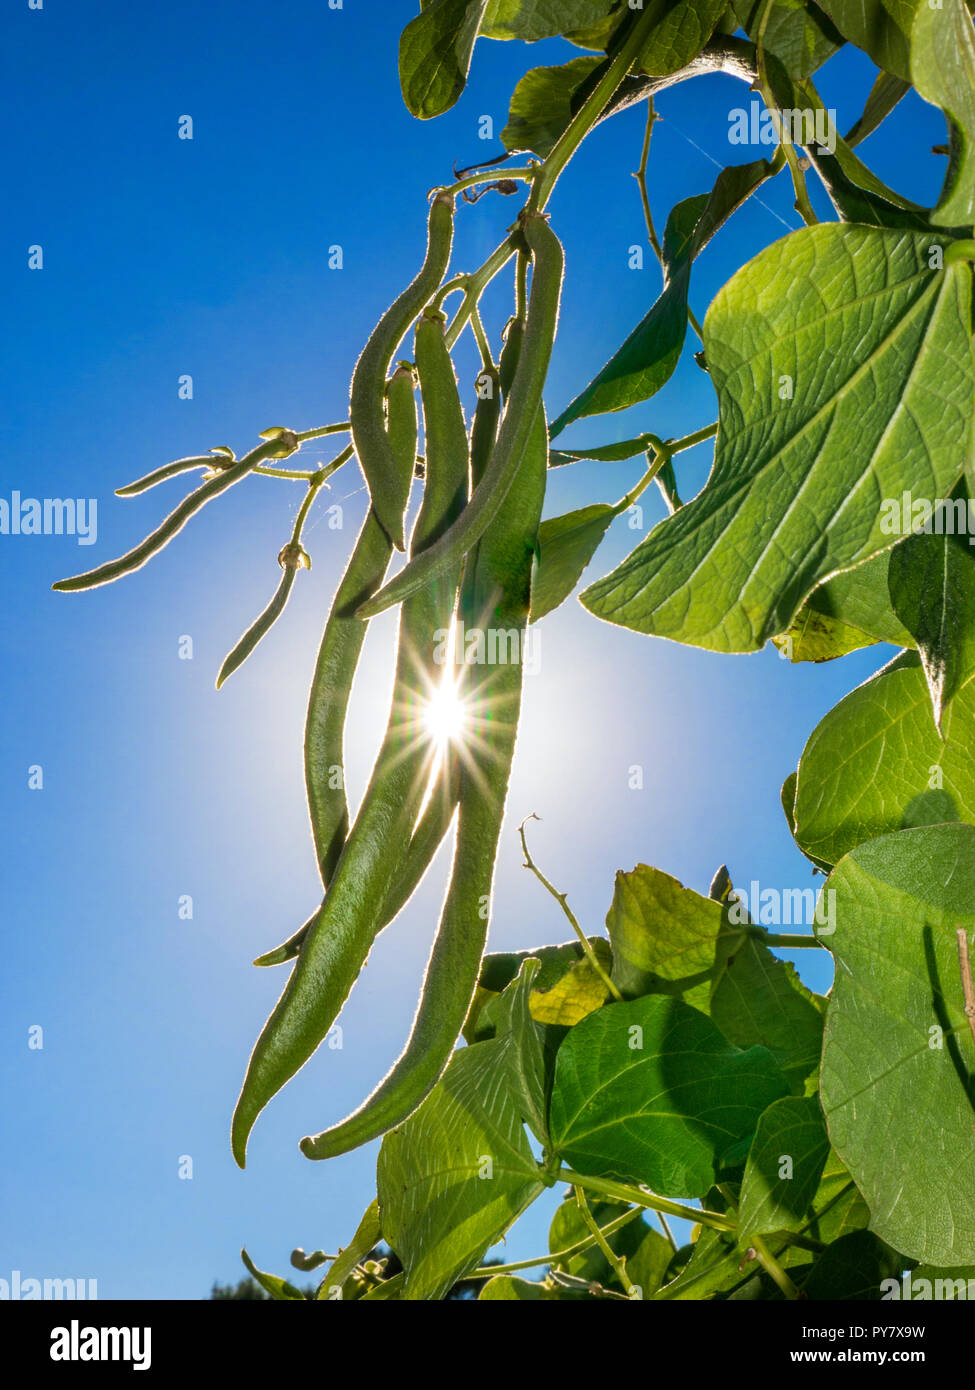 Runner Bean 'Moonlight' on a garden frame with sun burst breaking through. British Self Pollinating beans - Stock Image